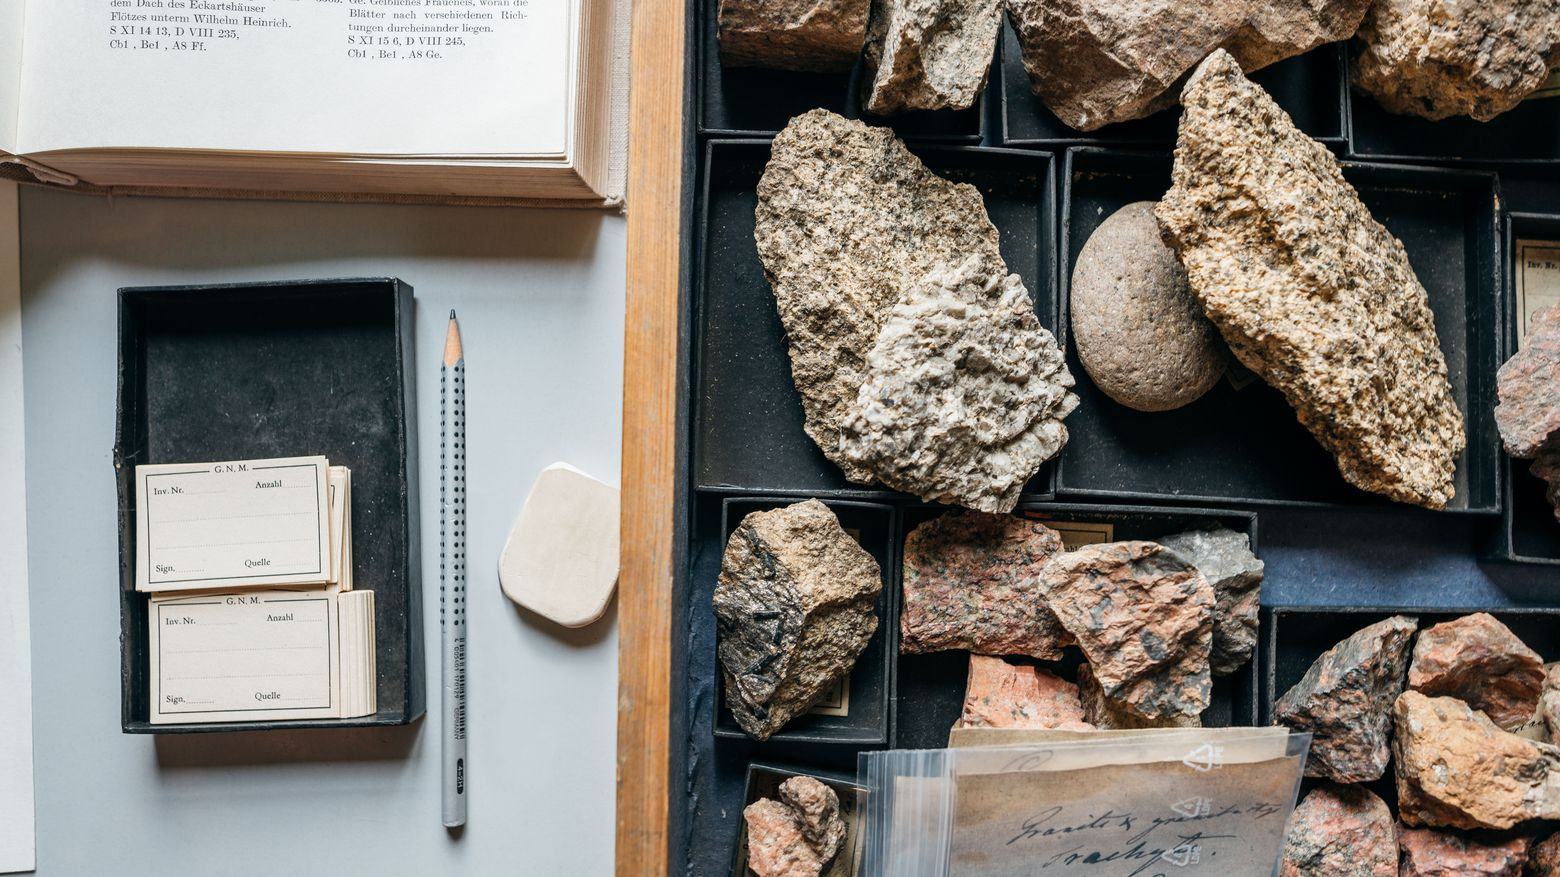 View inside a drawer of one of Goethe's mineral cabinets